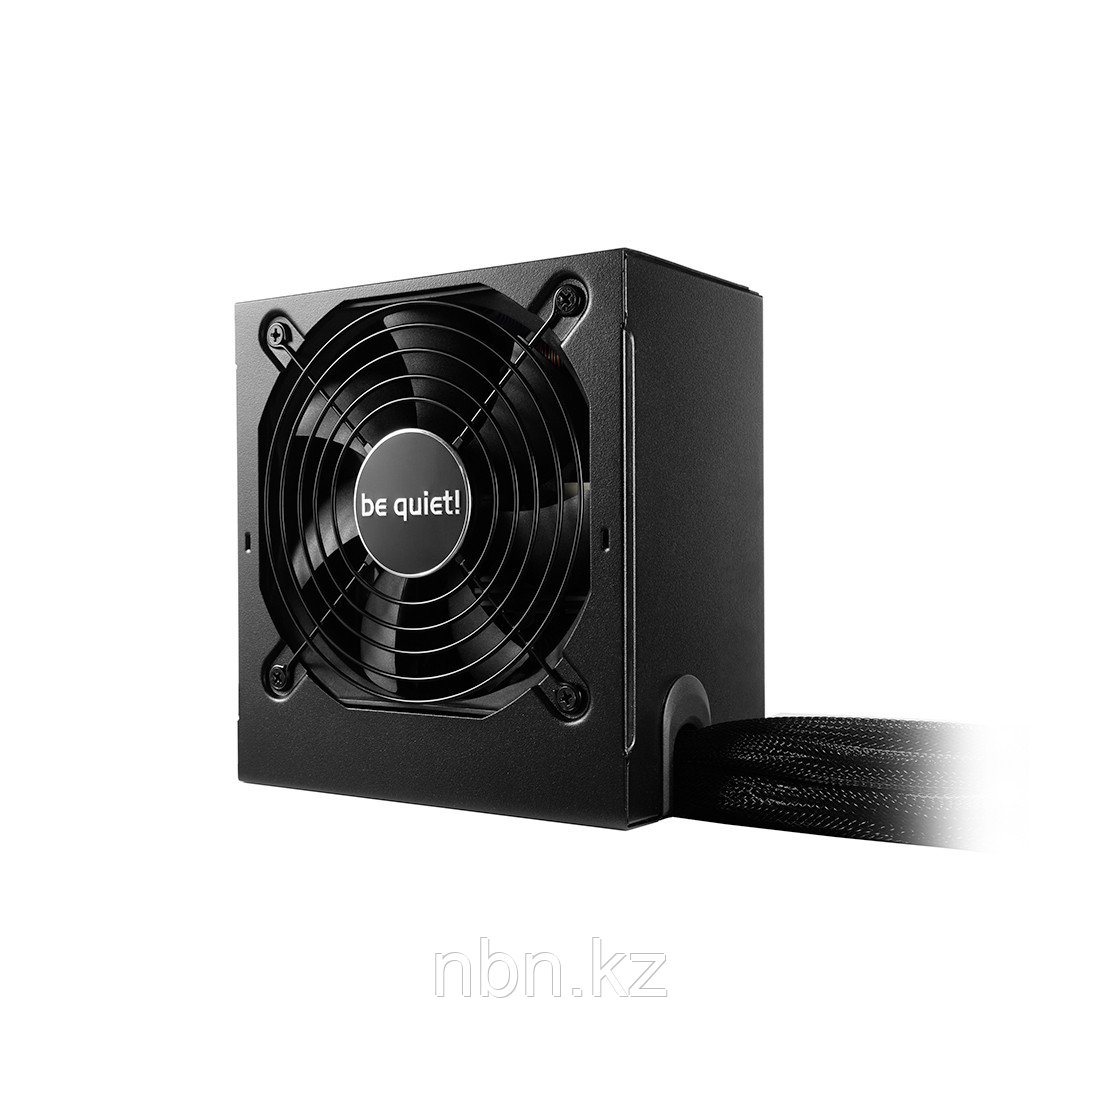 Блок питания Bequiet! System Power 9 600W